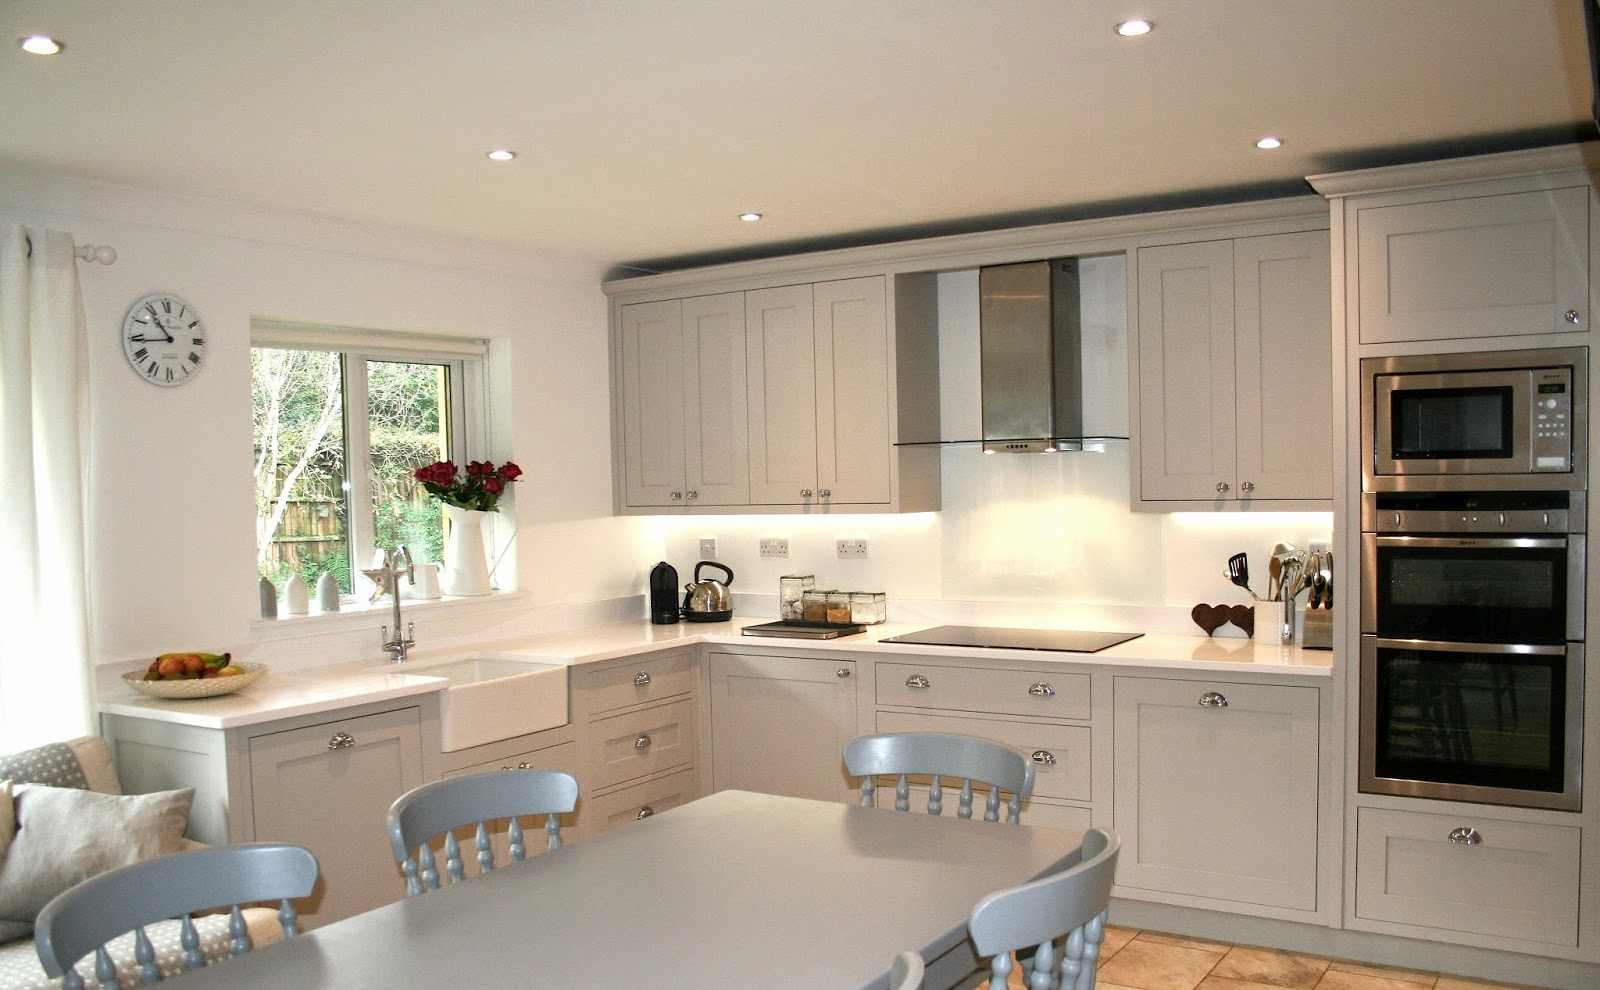 french grey kitchen grey kitchen chairs The in frame cabinetry is painted in the Little Greene s French Grey whilst the table and chairs are painted in contrasting Mid Lead